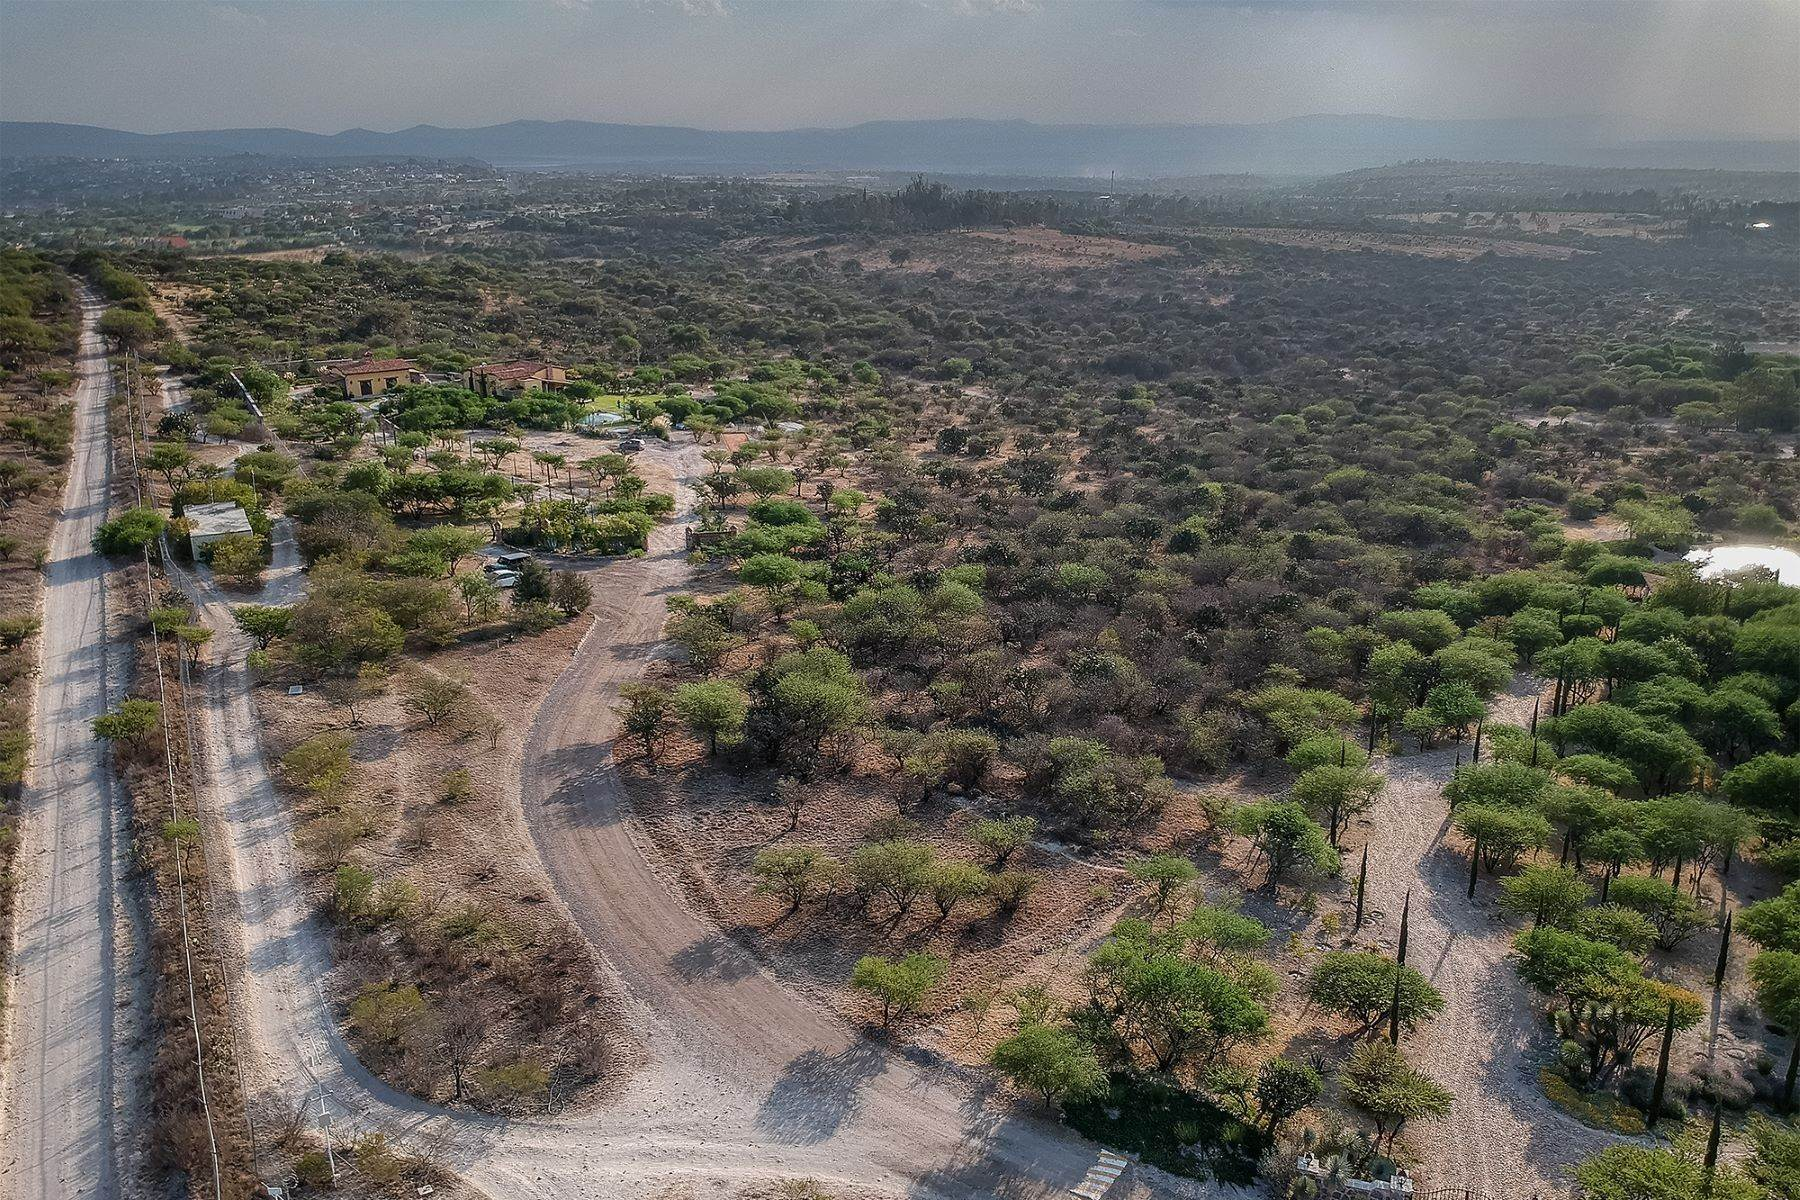 Land for Sale at Lot 31 Candelaria Estate Lot La Candelaria San Miguel De Allende, Guanajuato 37883 Mexico